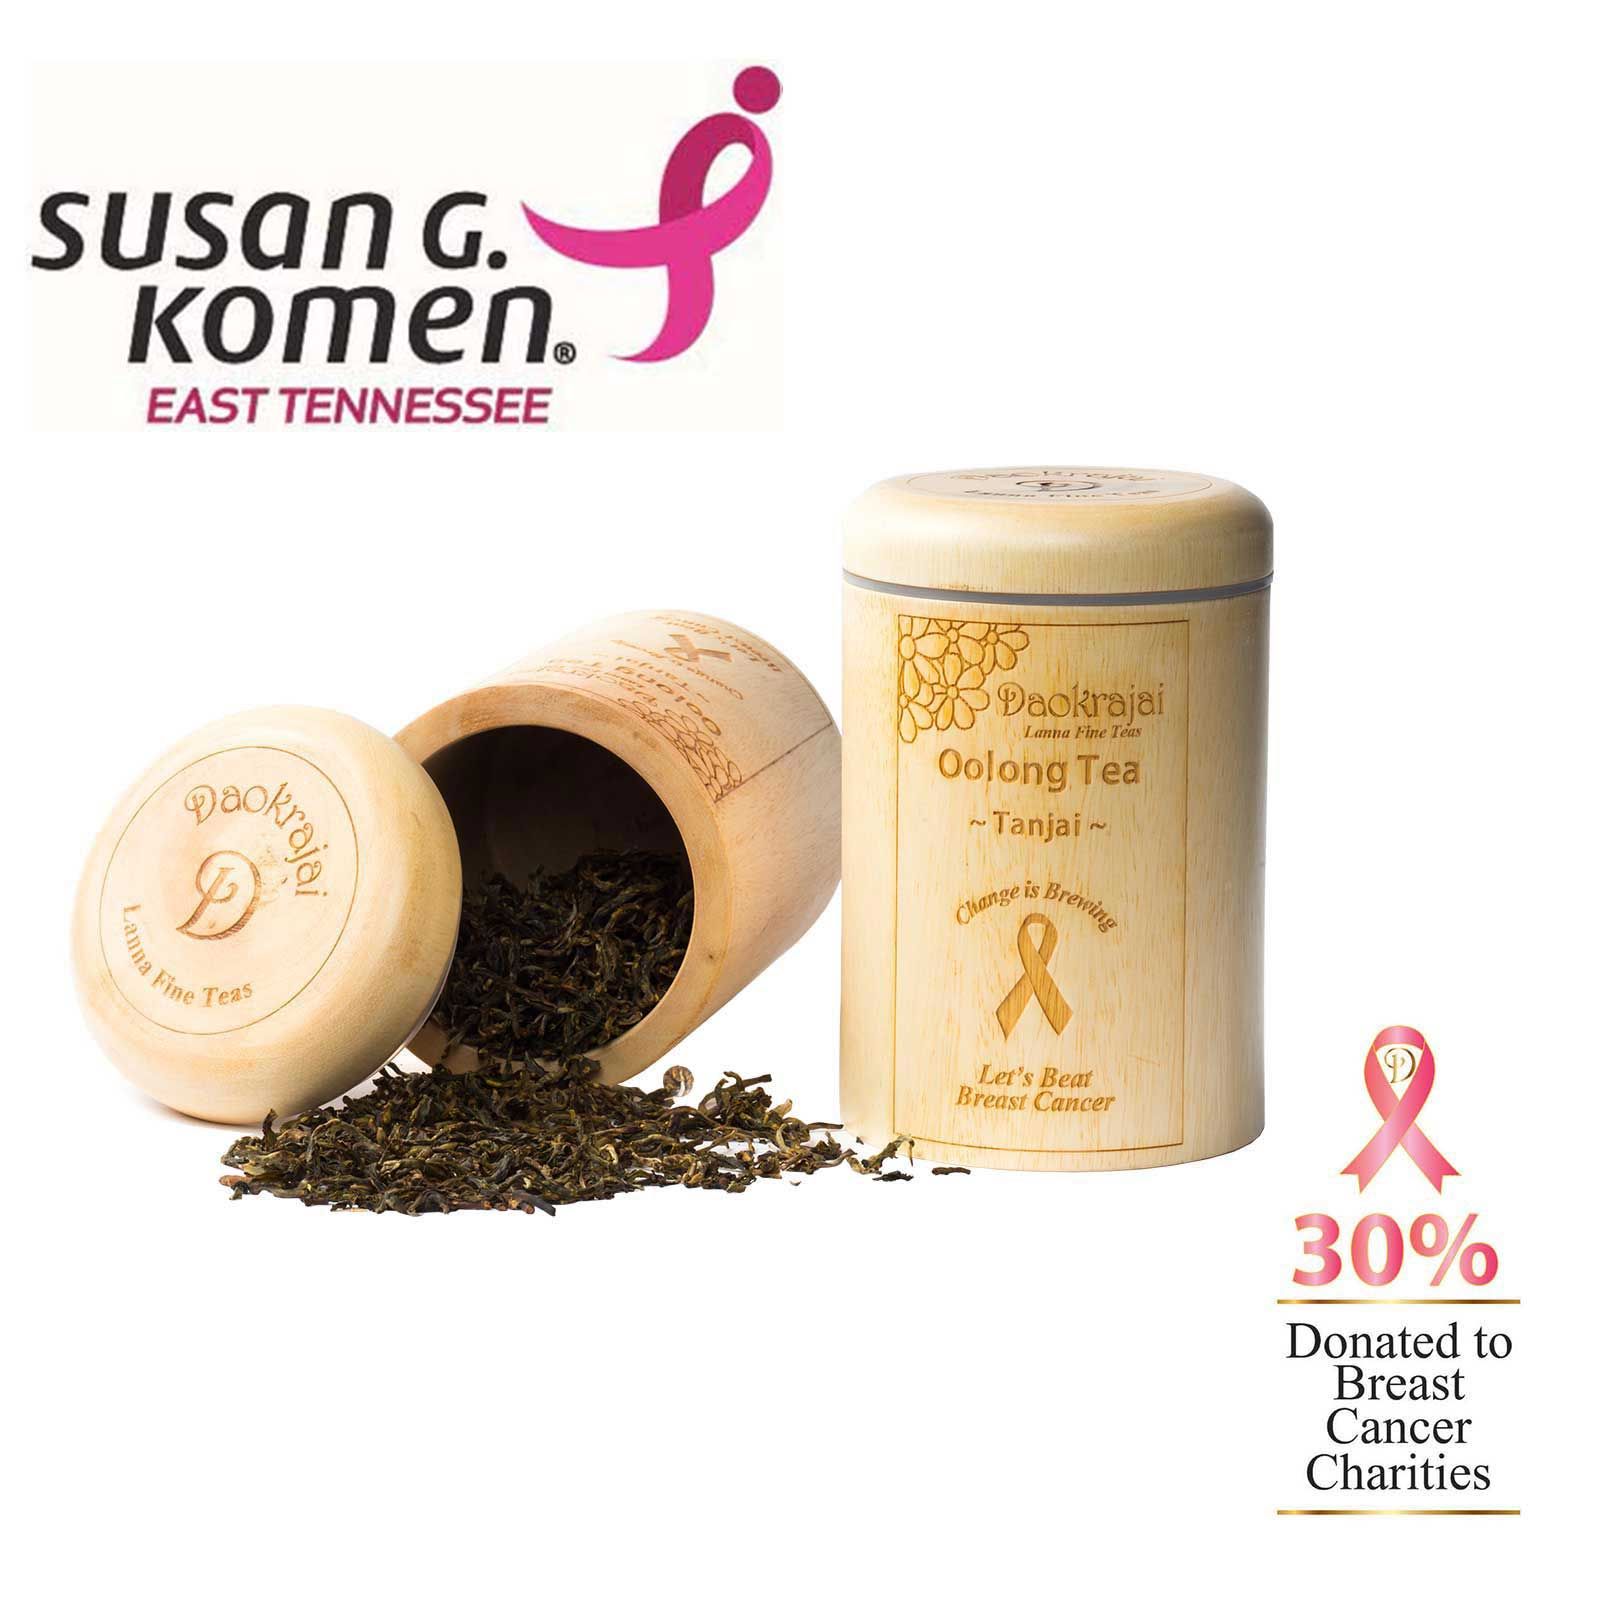 Oolong Tea Tanjai Caddy Supporting the Susan G. Komen East Tennessee cancer charity